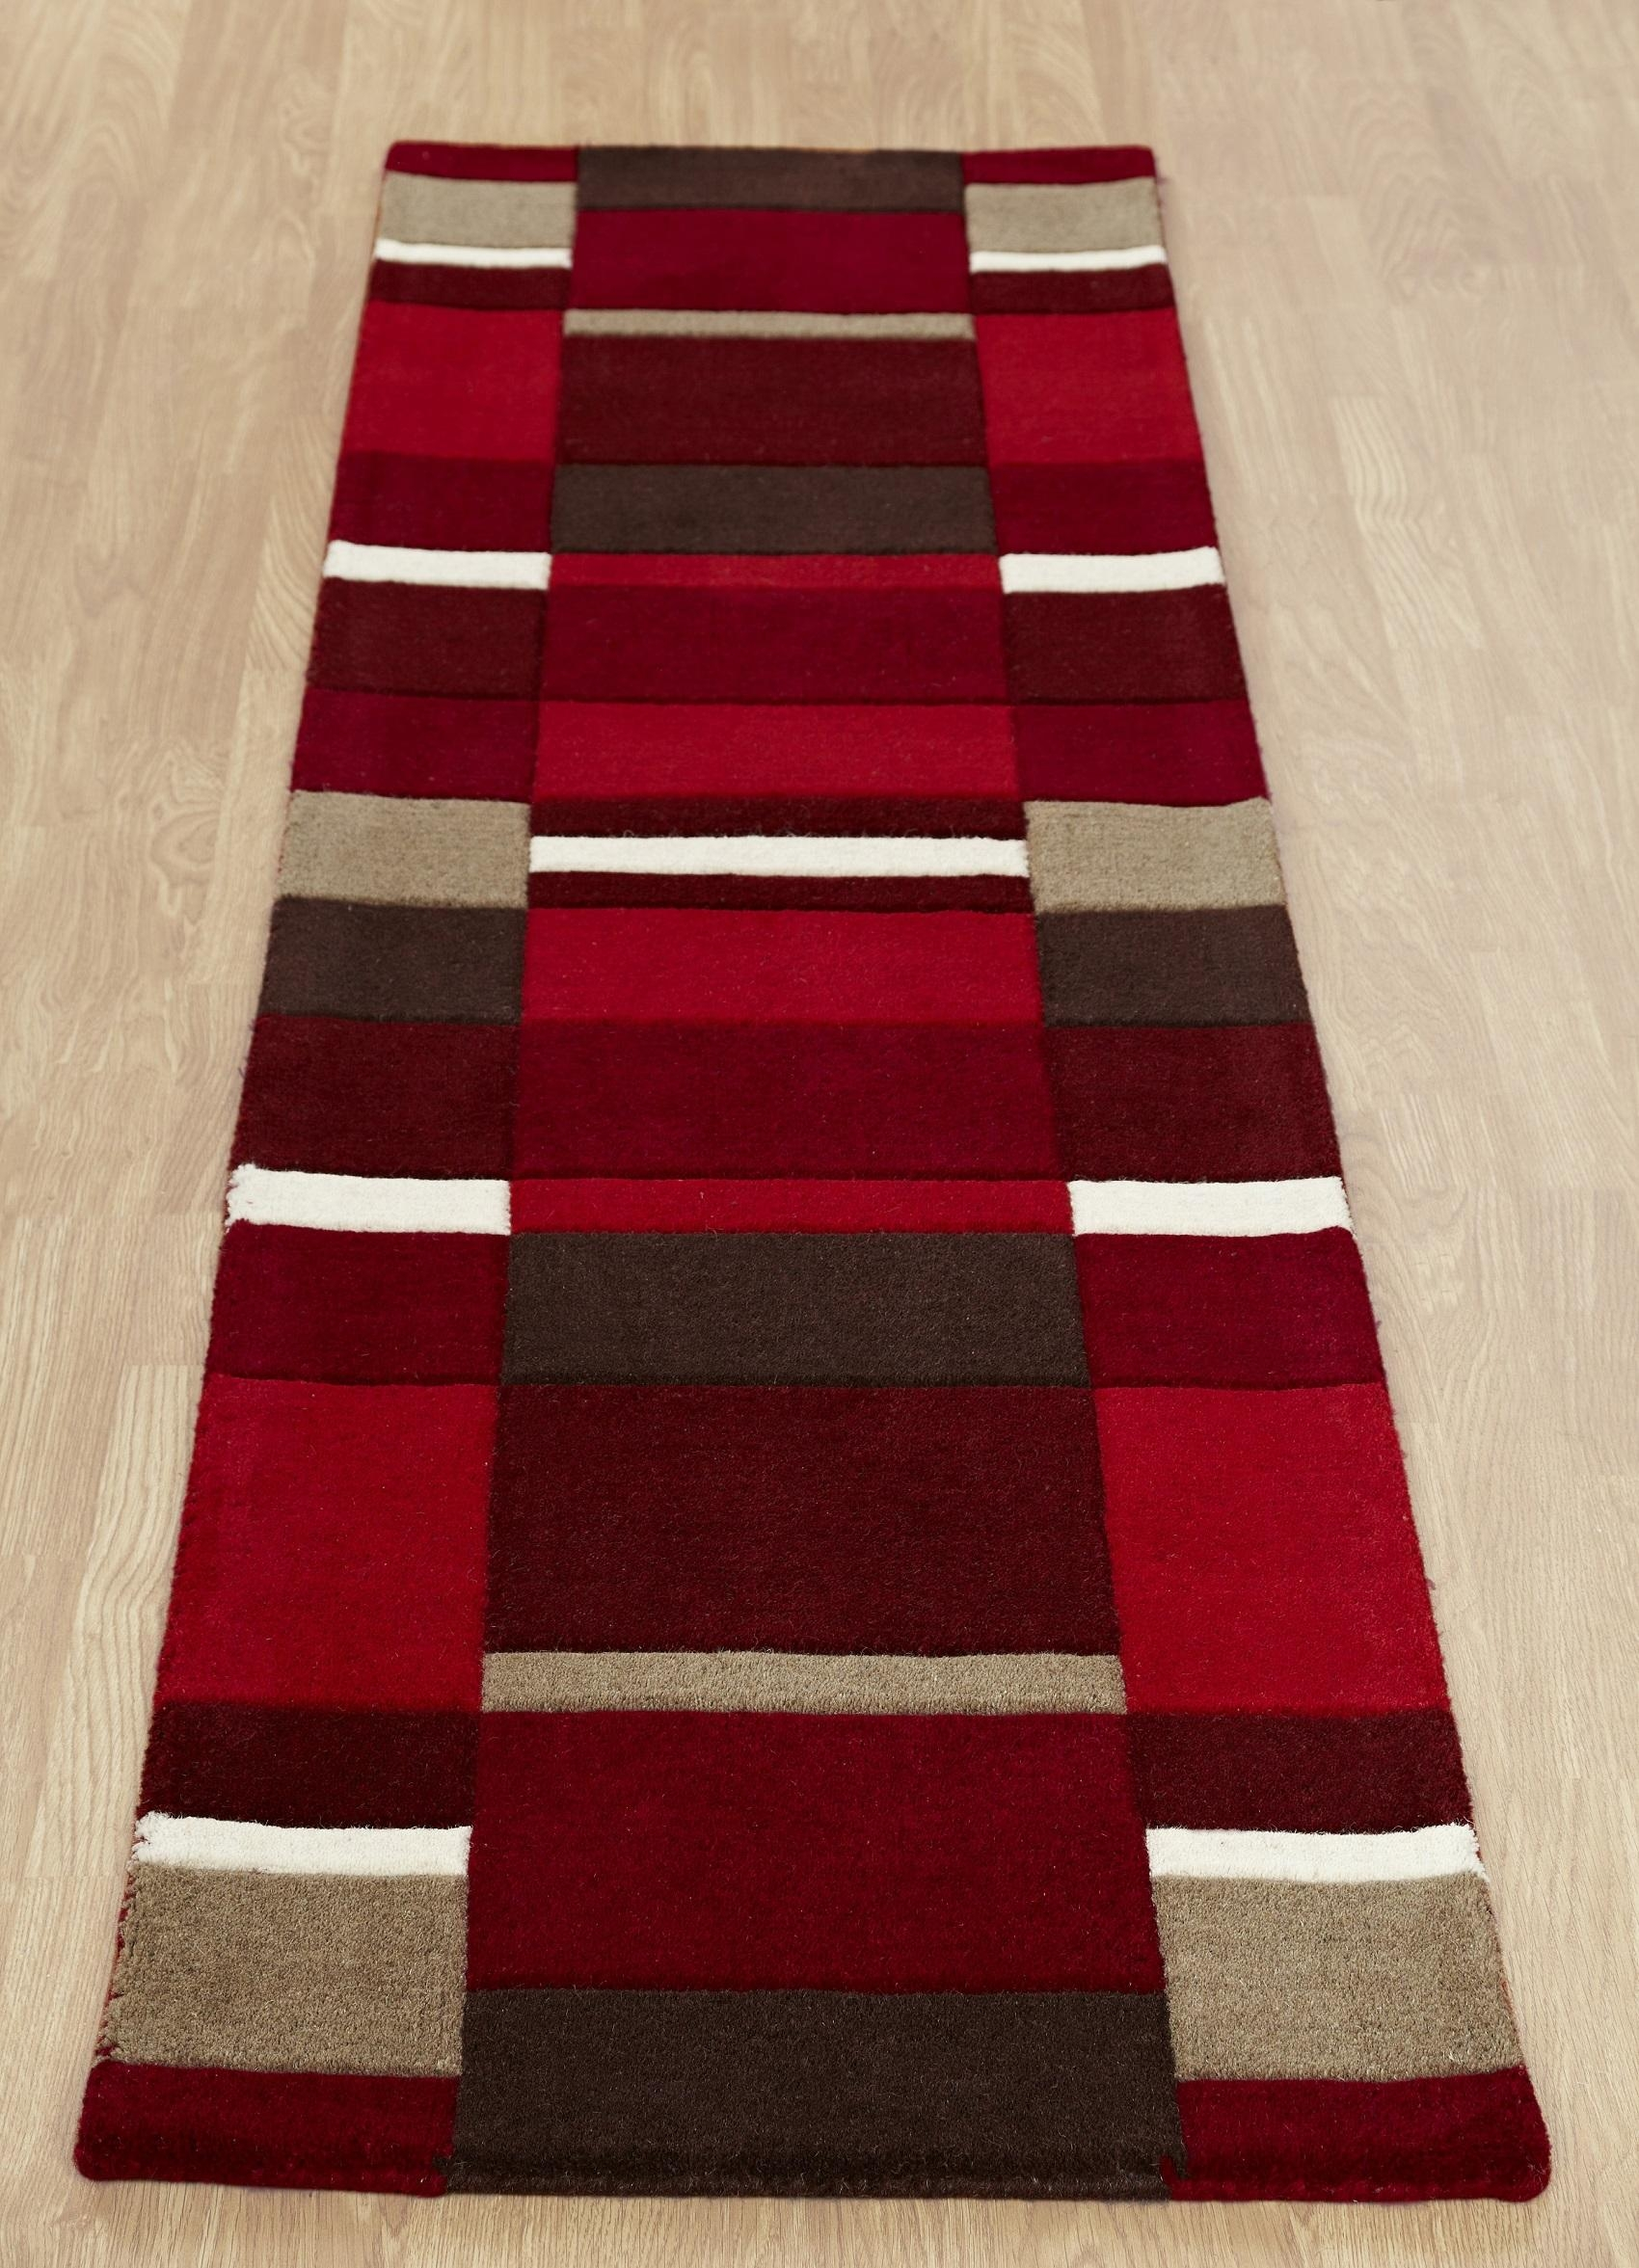 Popular Photo of Red Runner Rugs For Hallway